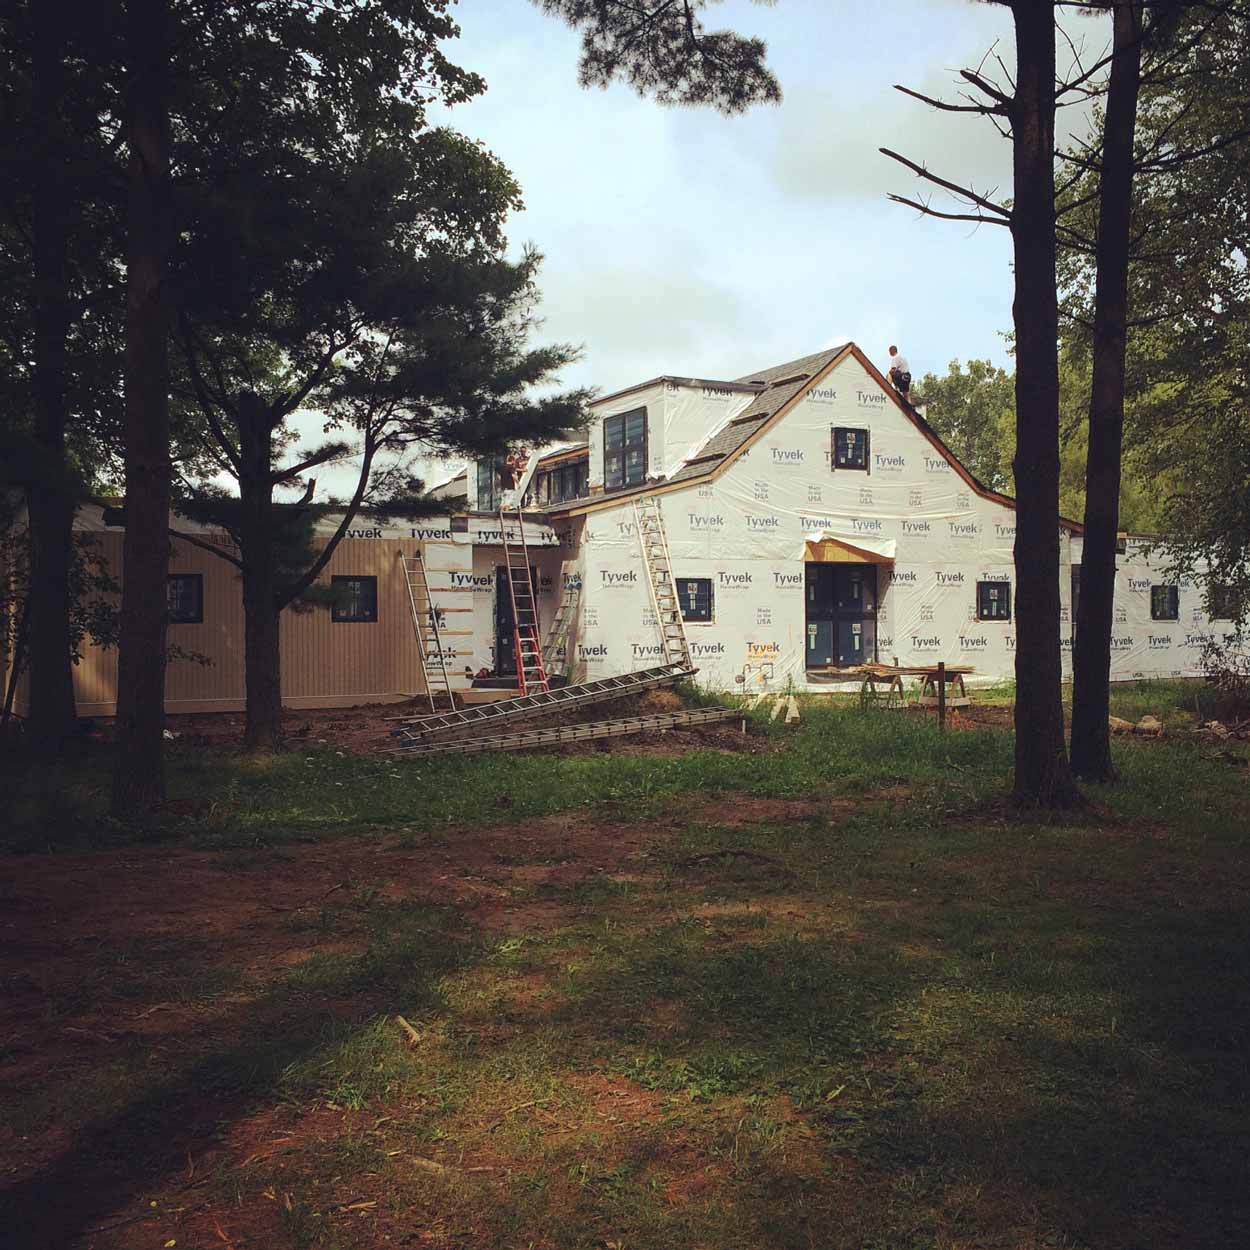 New Modern Farmhouse 3 - East Elevation Siding Underway - HAUS Architecture, Christopher Short, Indianapolis Architect